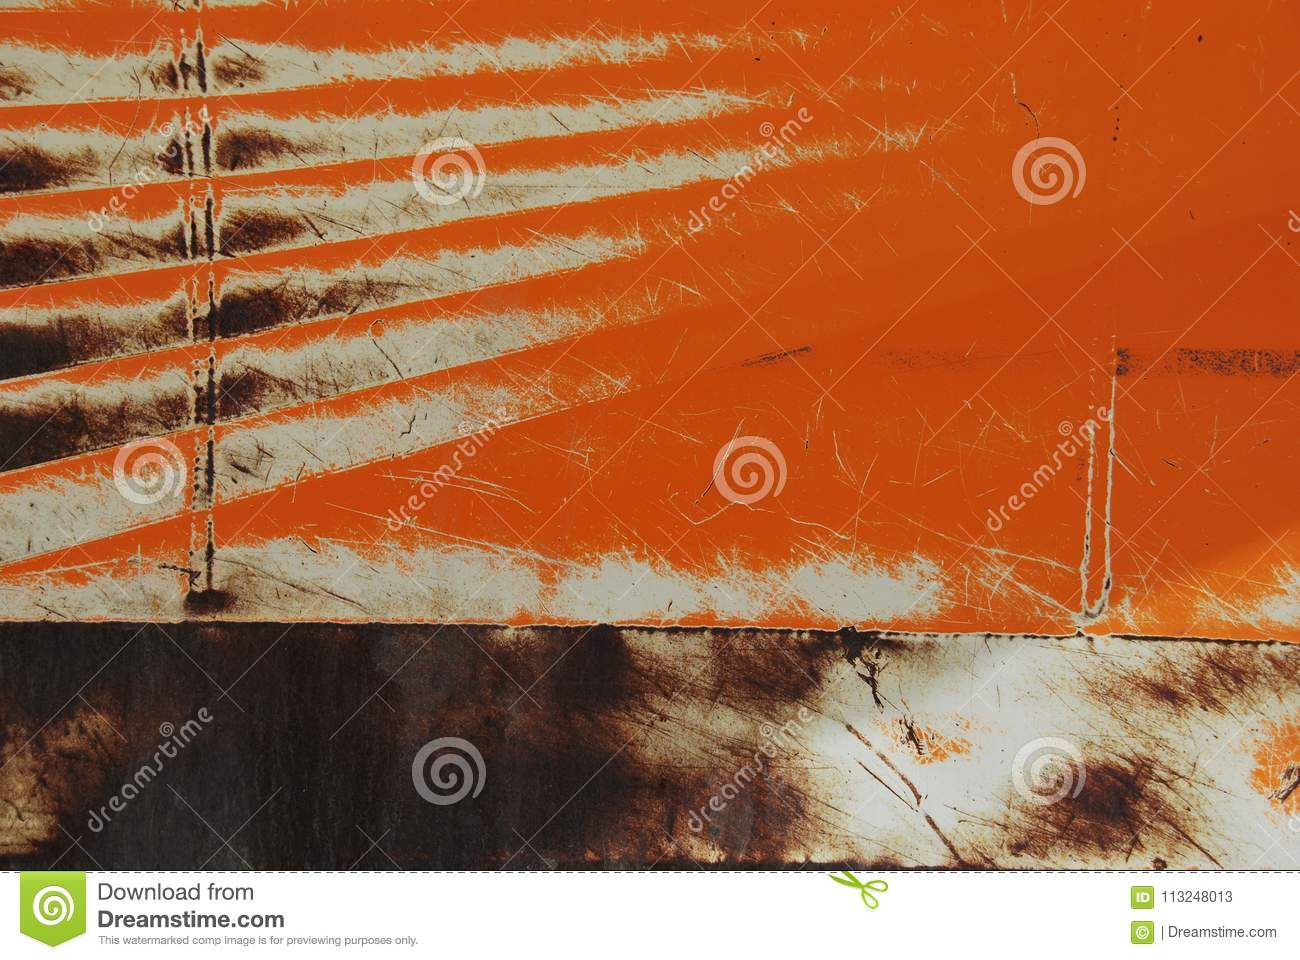 Download Abstract Colour Combination And Rust Seen On A Piece Of Heavy Machinery Stock Image